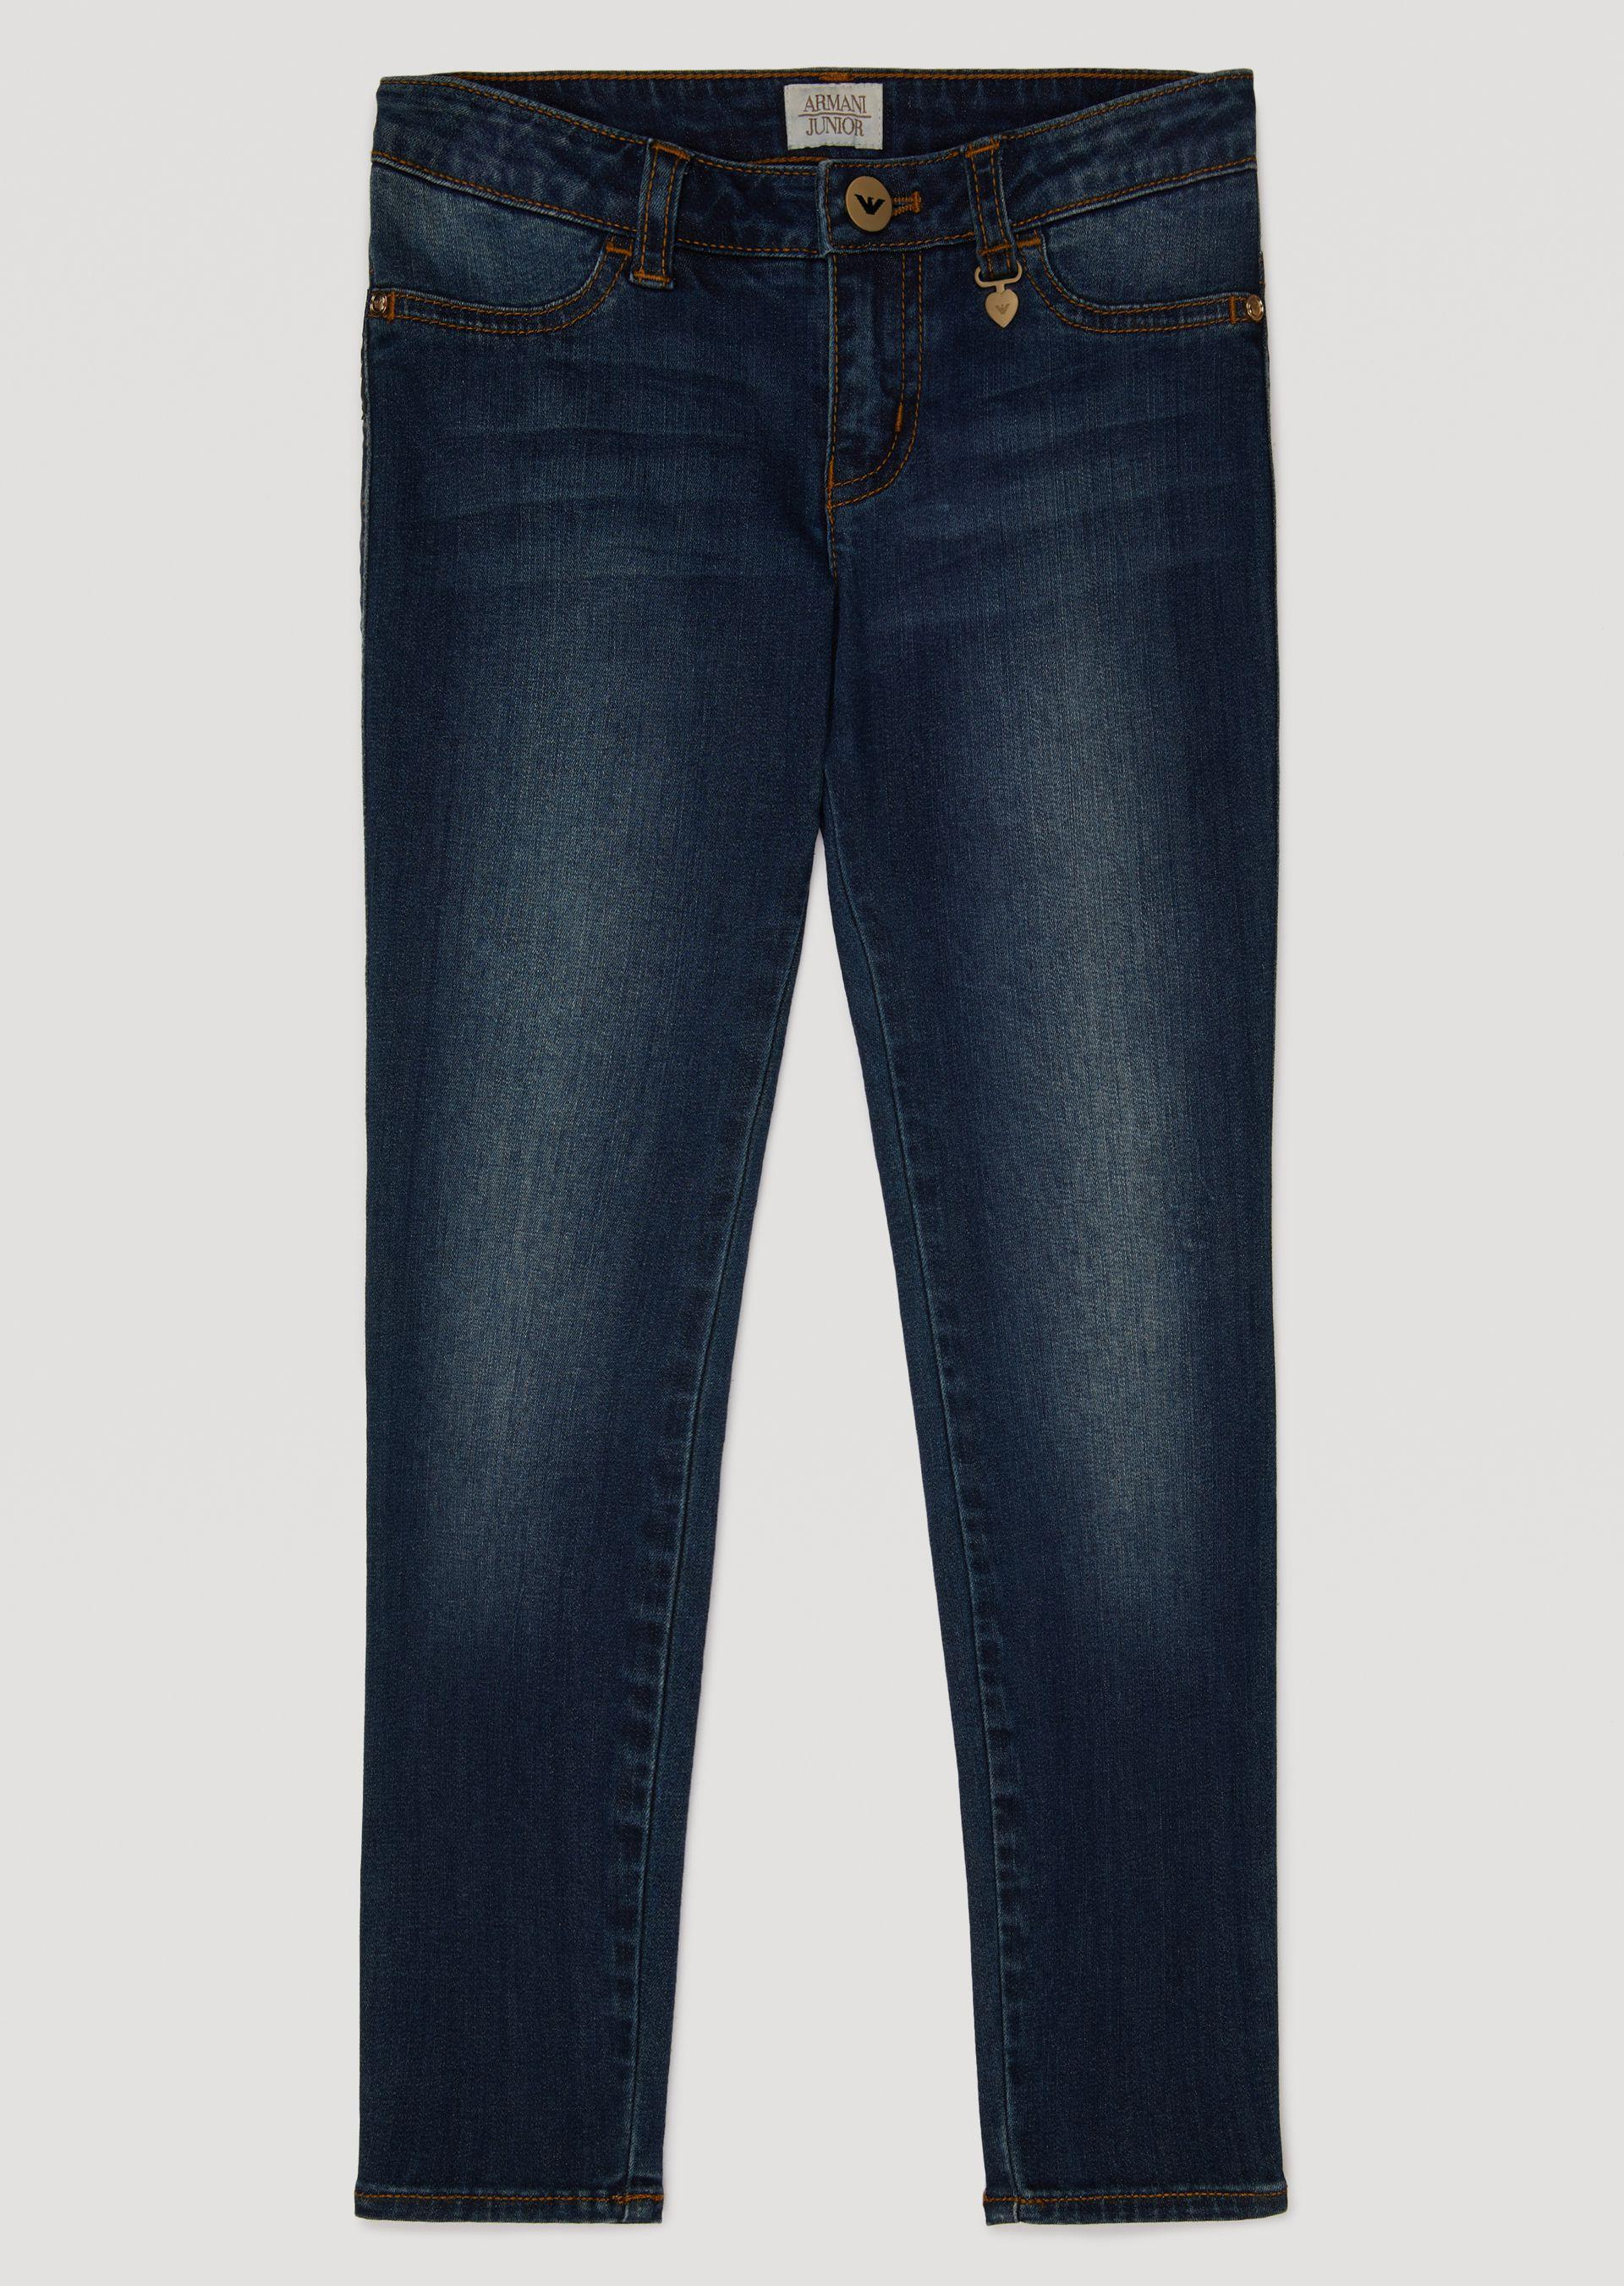 Emporio Armani 5 Pockets - Item 13164036 In Denim